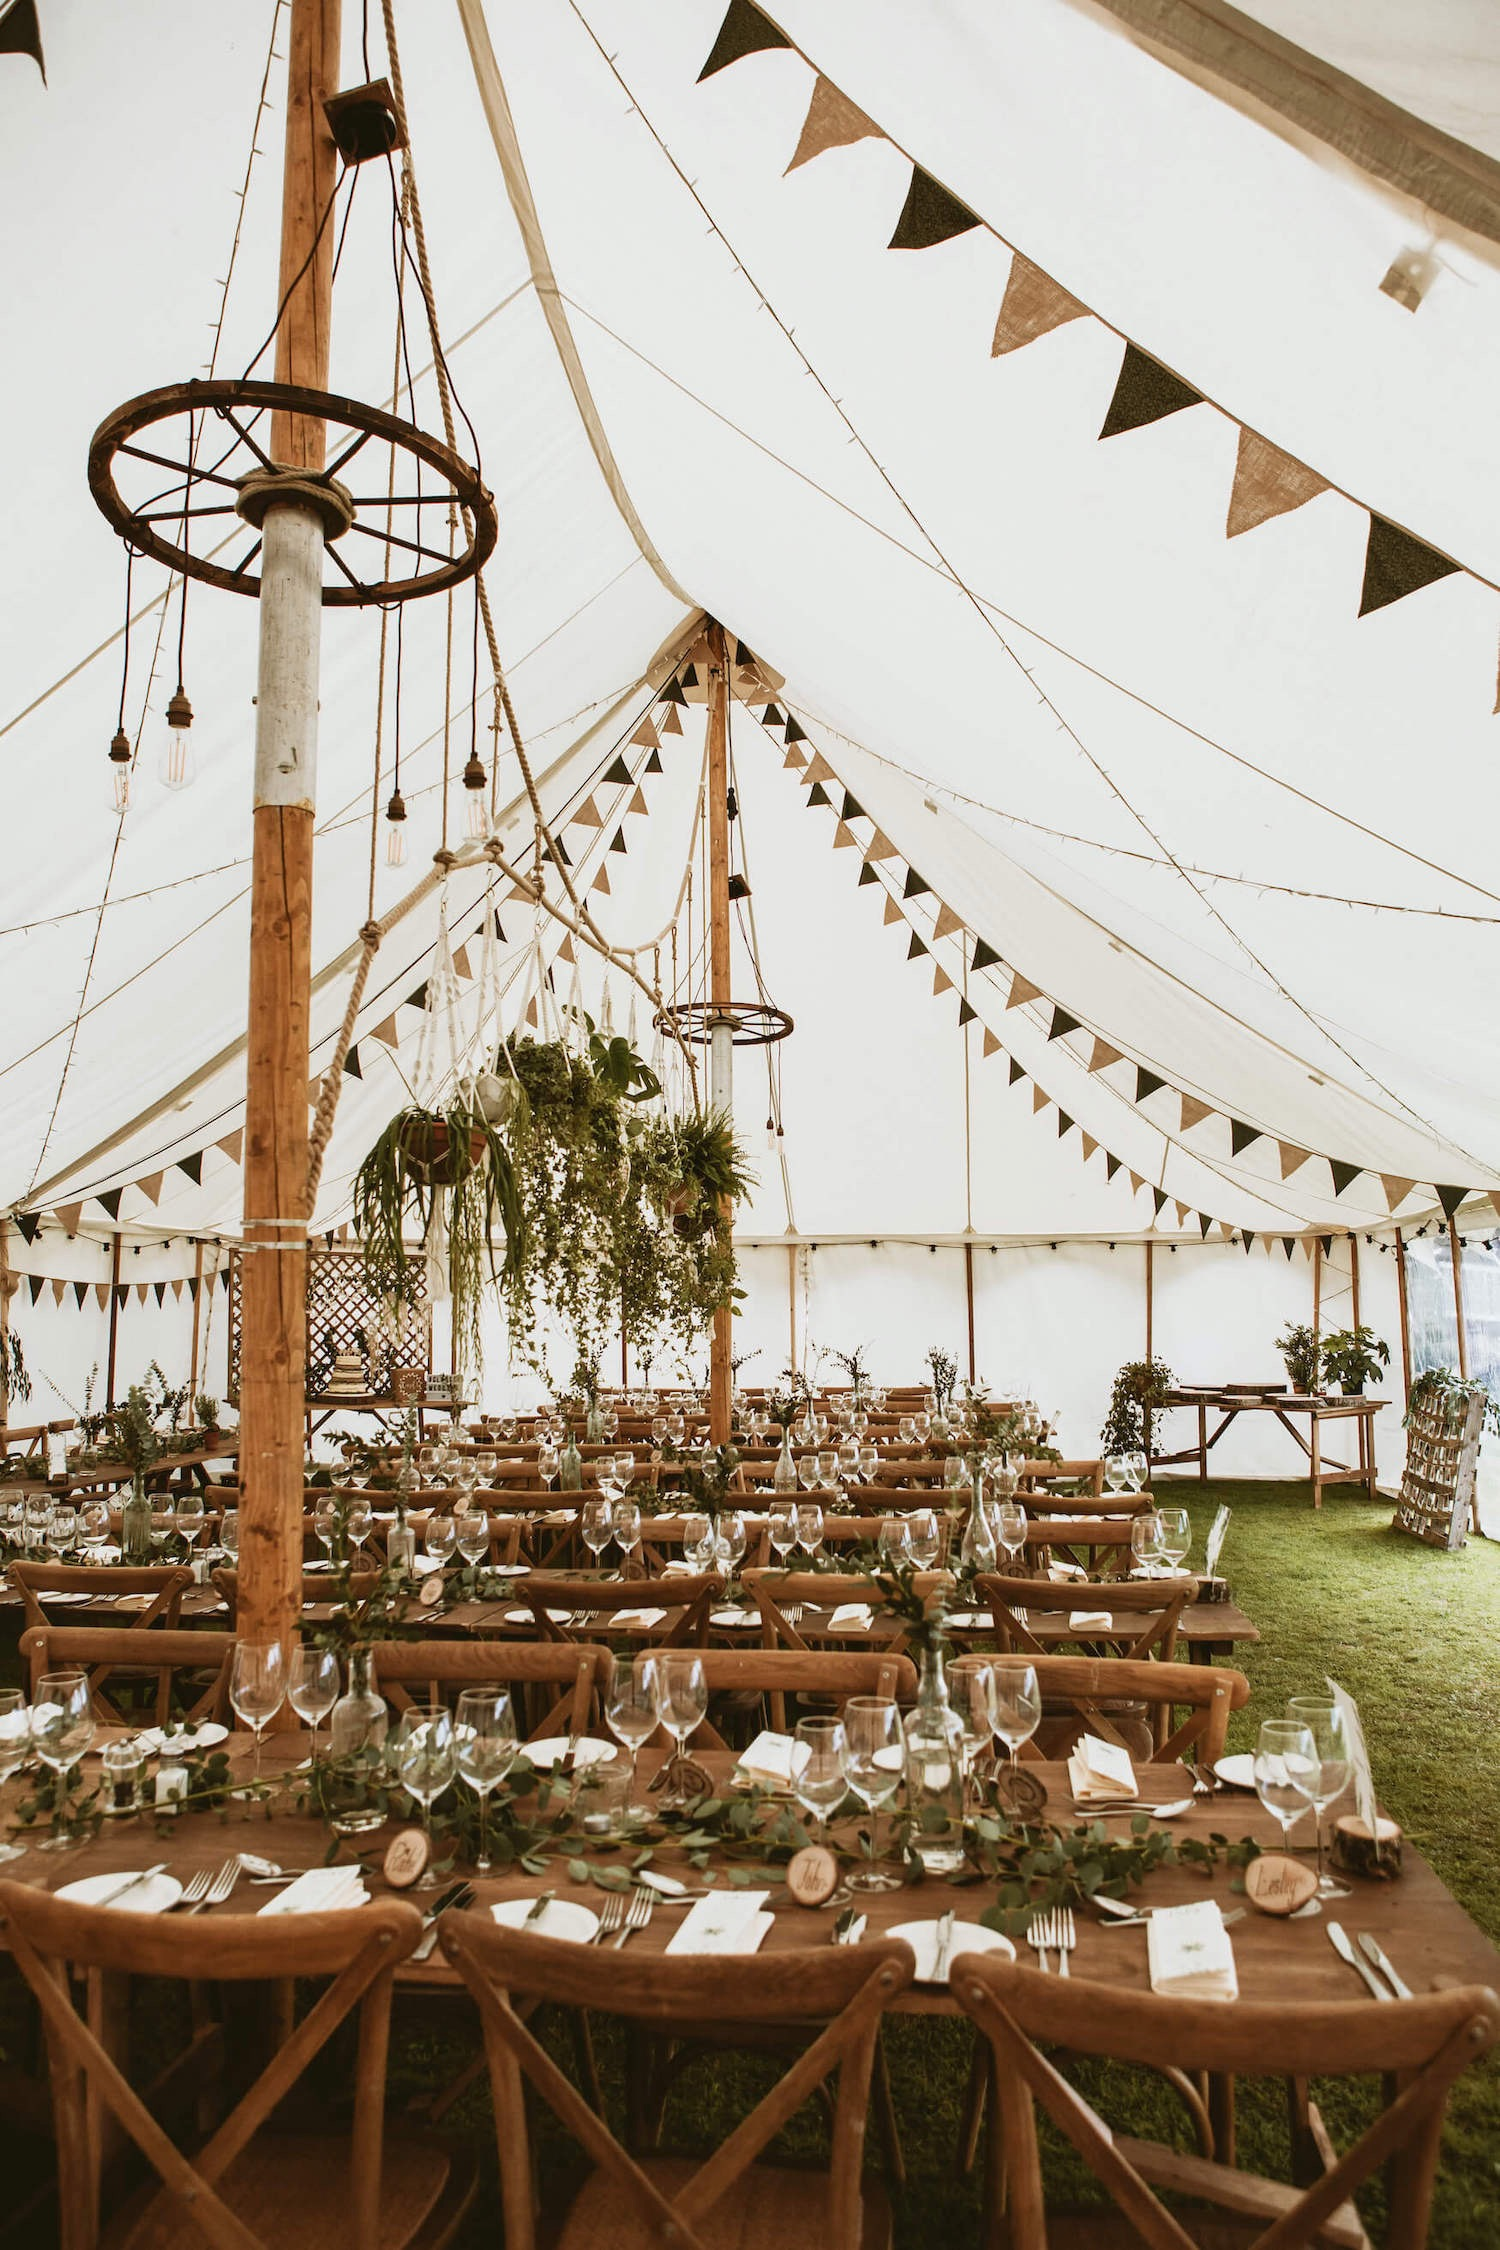 Eco-wedding inspiration using canvas wedding marquee and natural decorations in Henley, near Reading